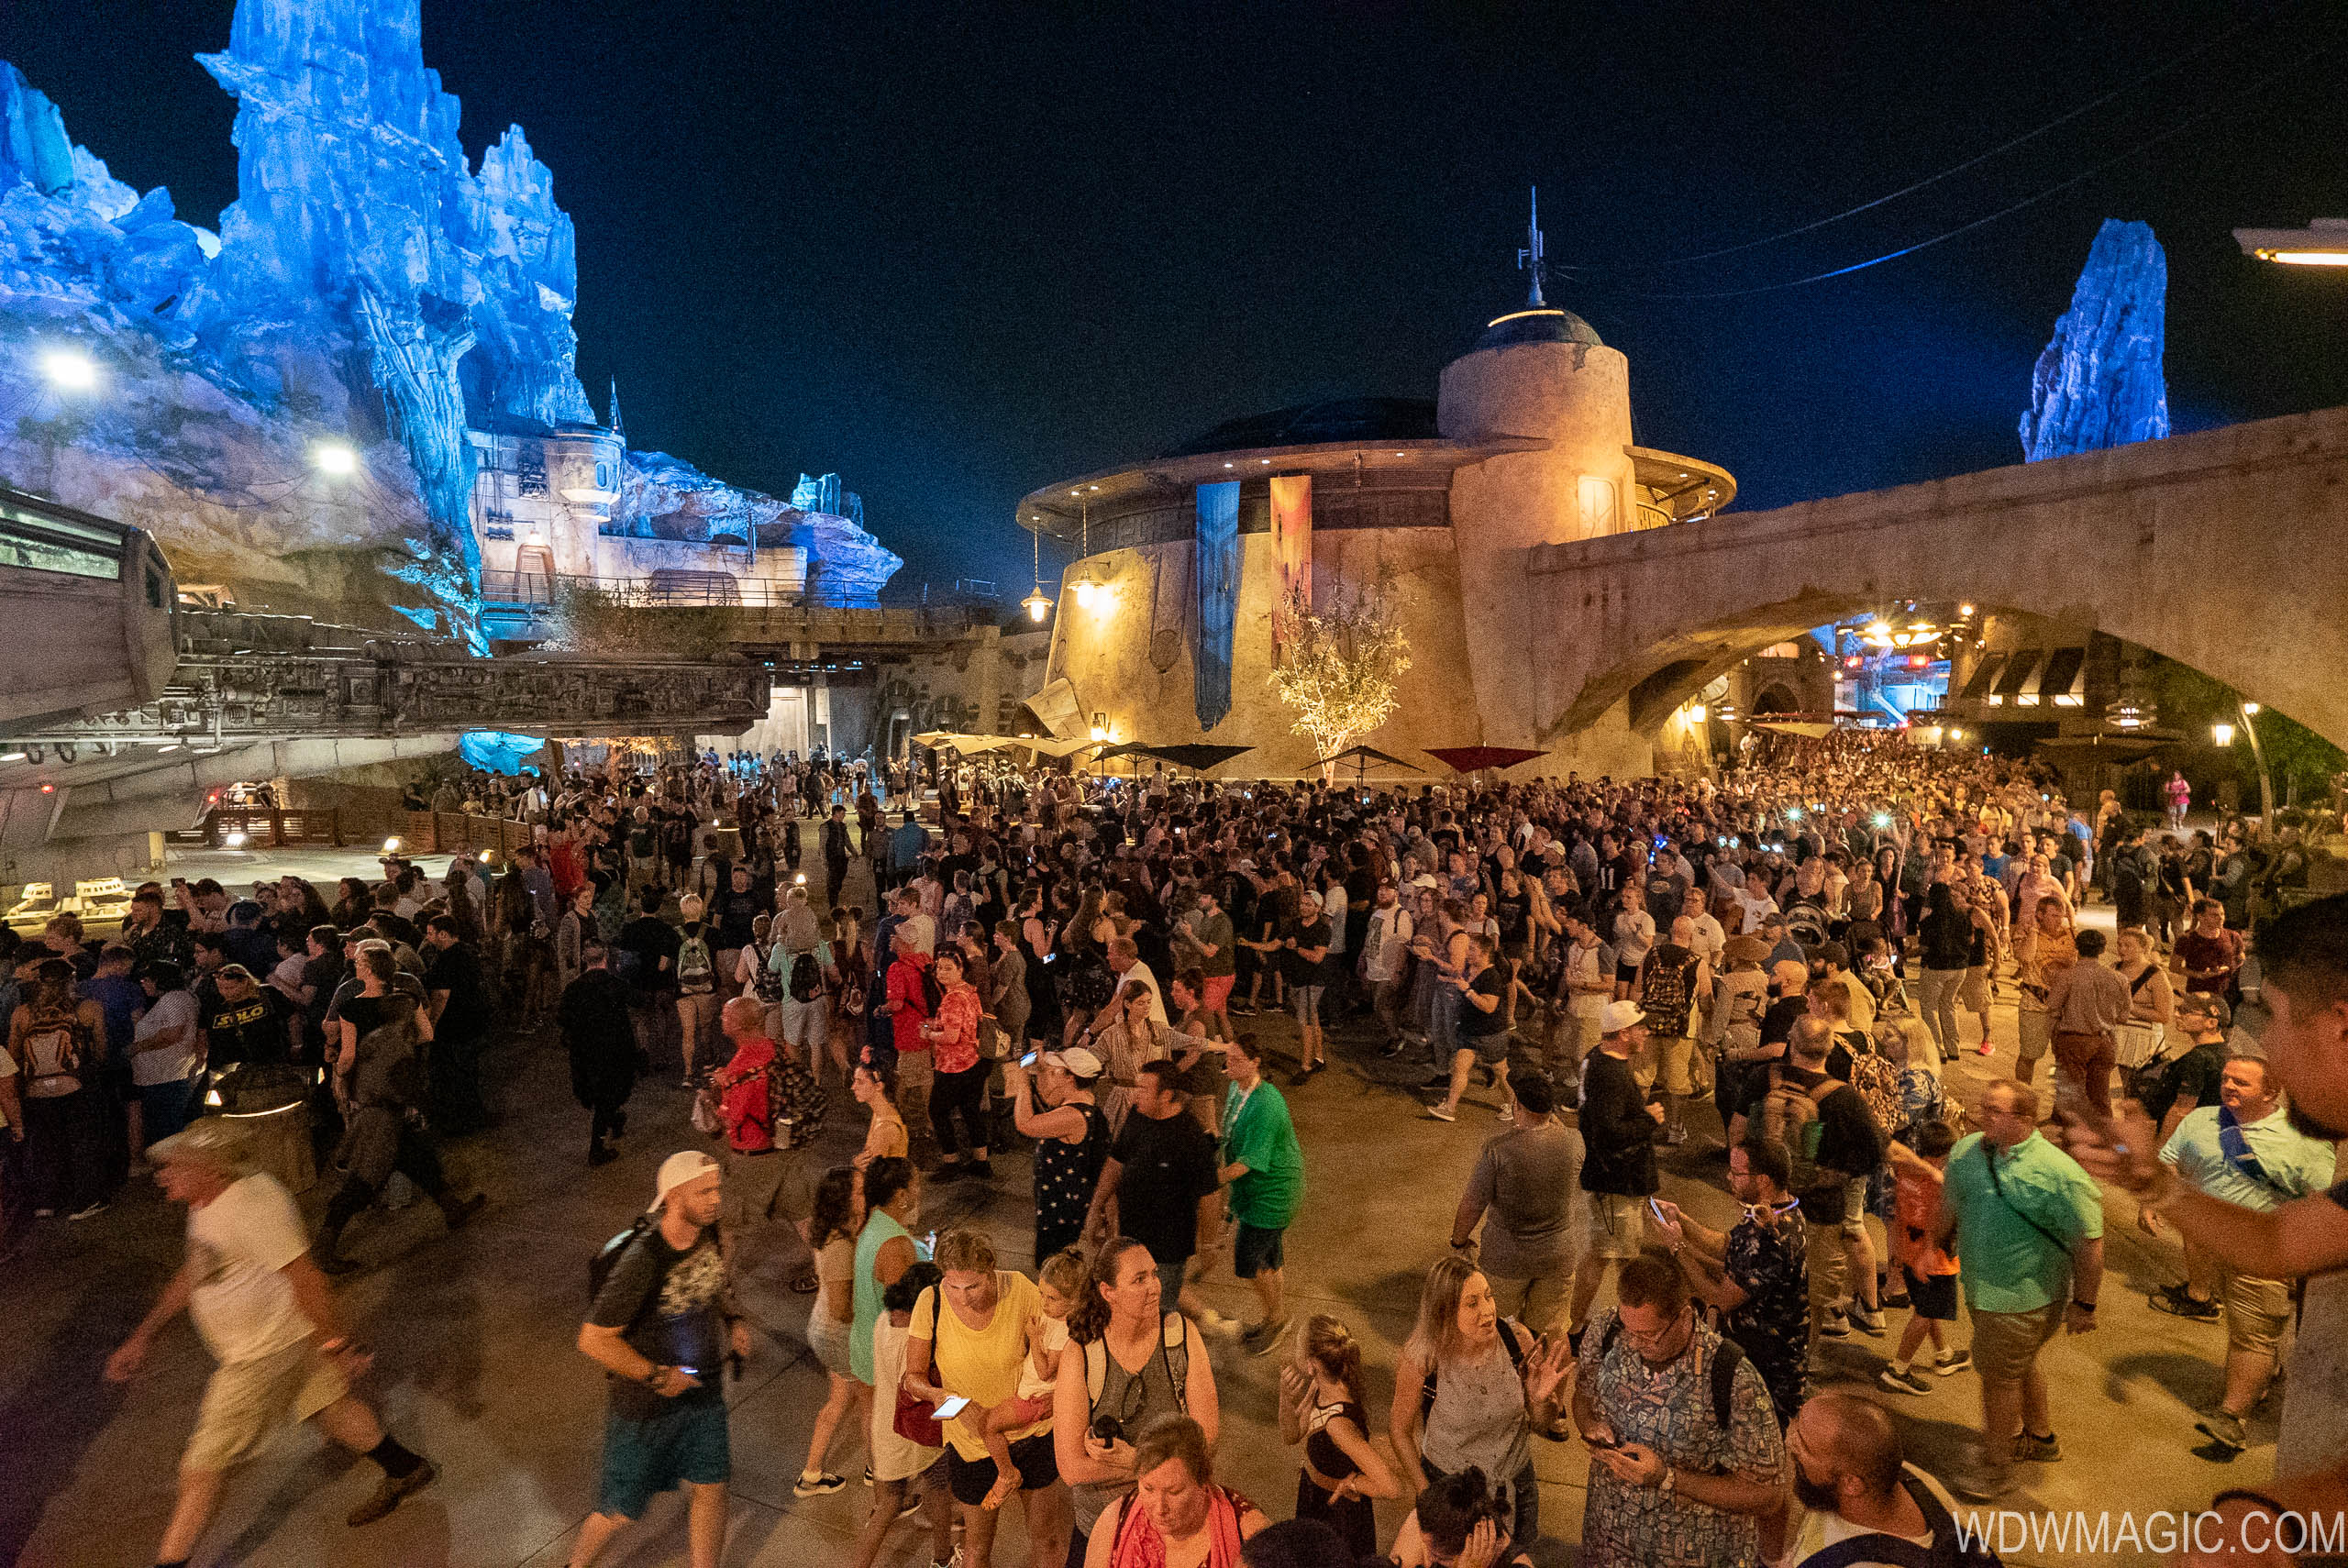 Yesterday's opening saw huge crowds at Galaxy's Edge